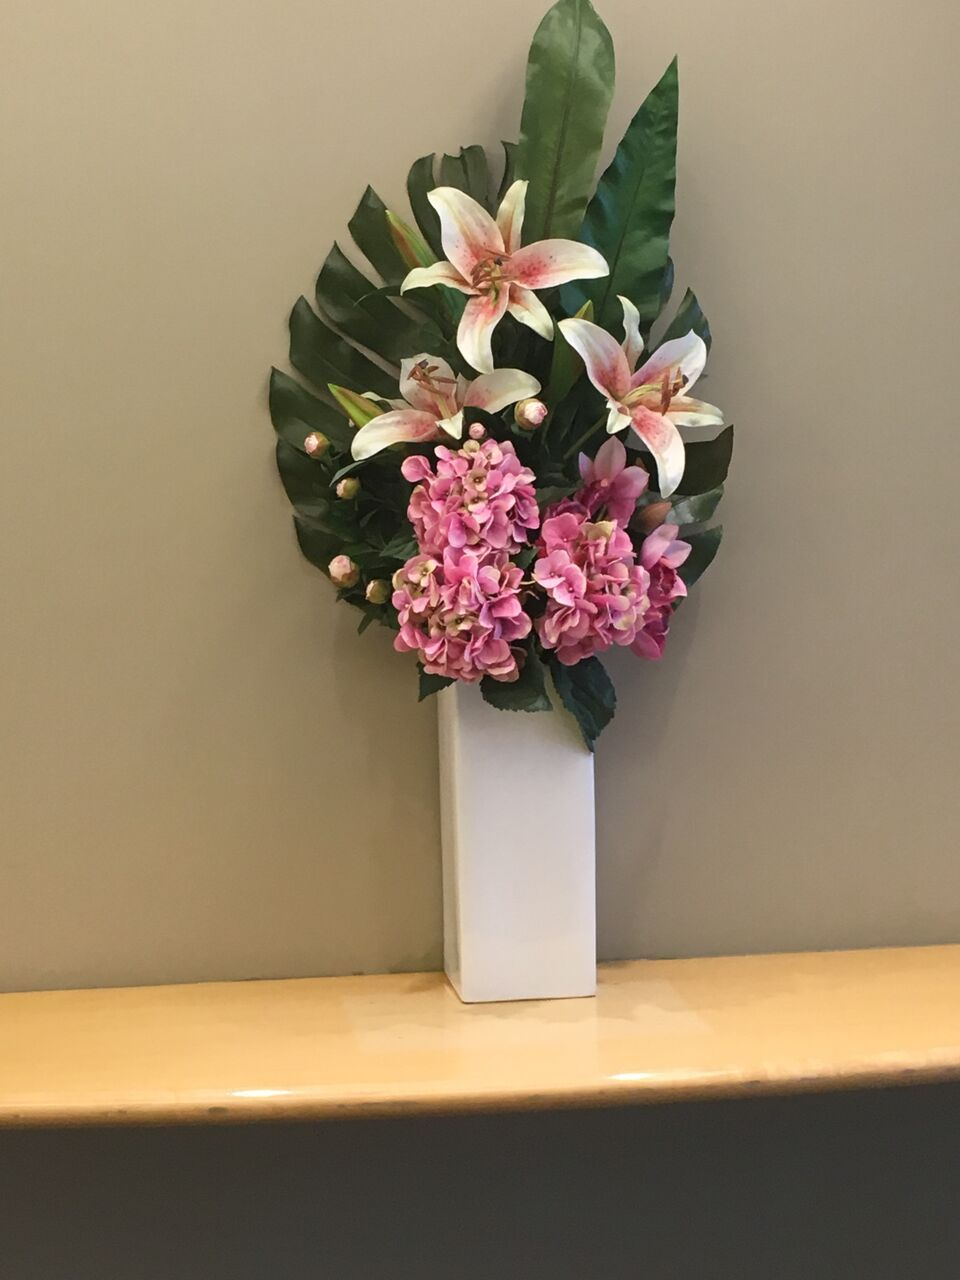 High Quality Corporate Flowers